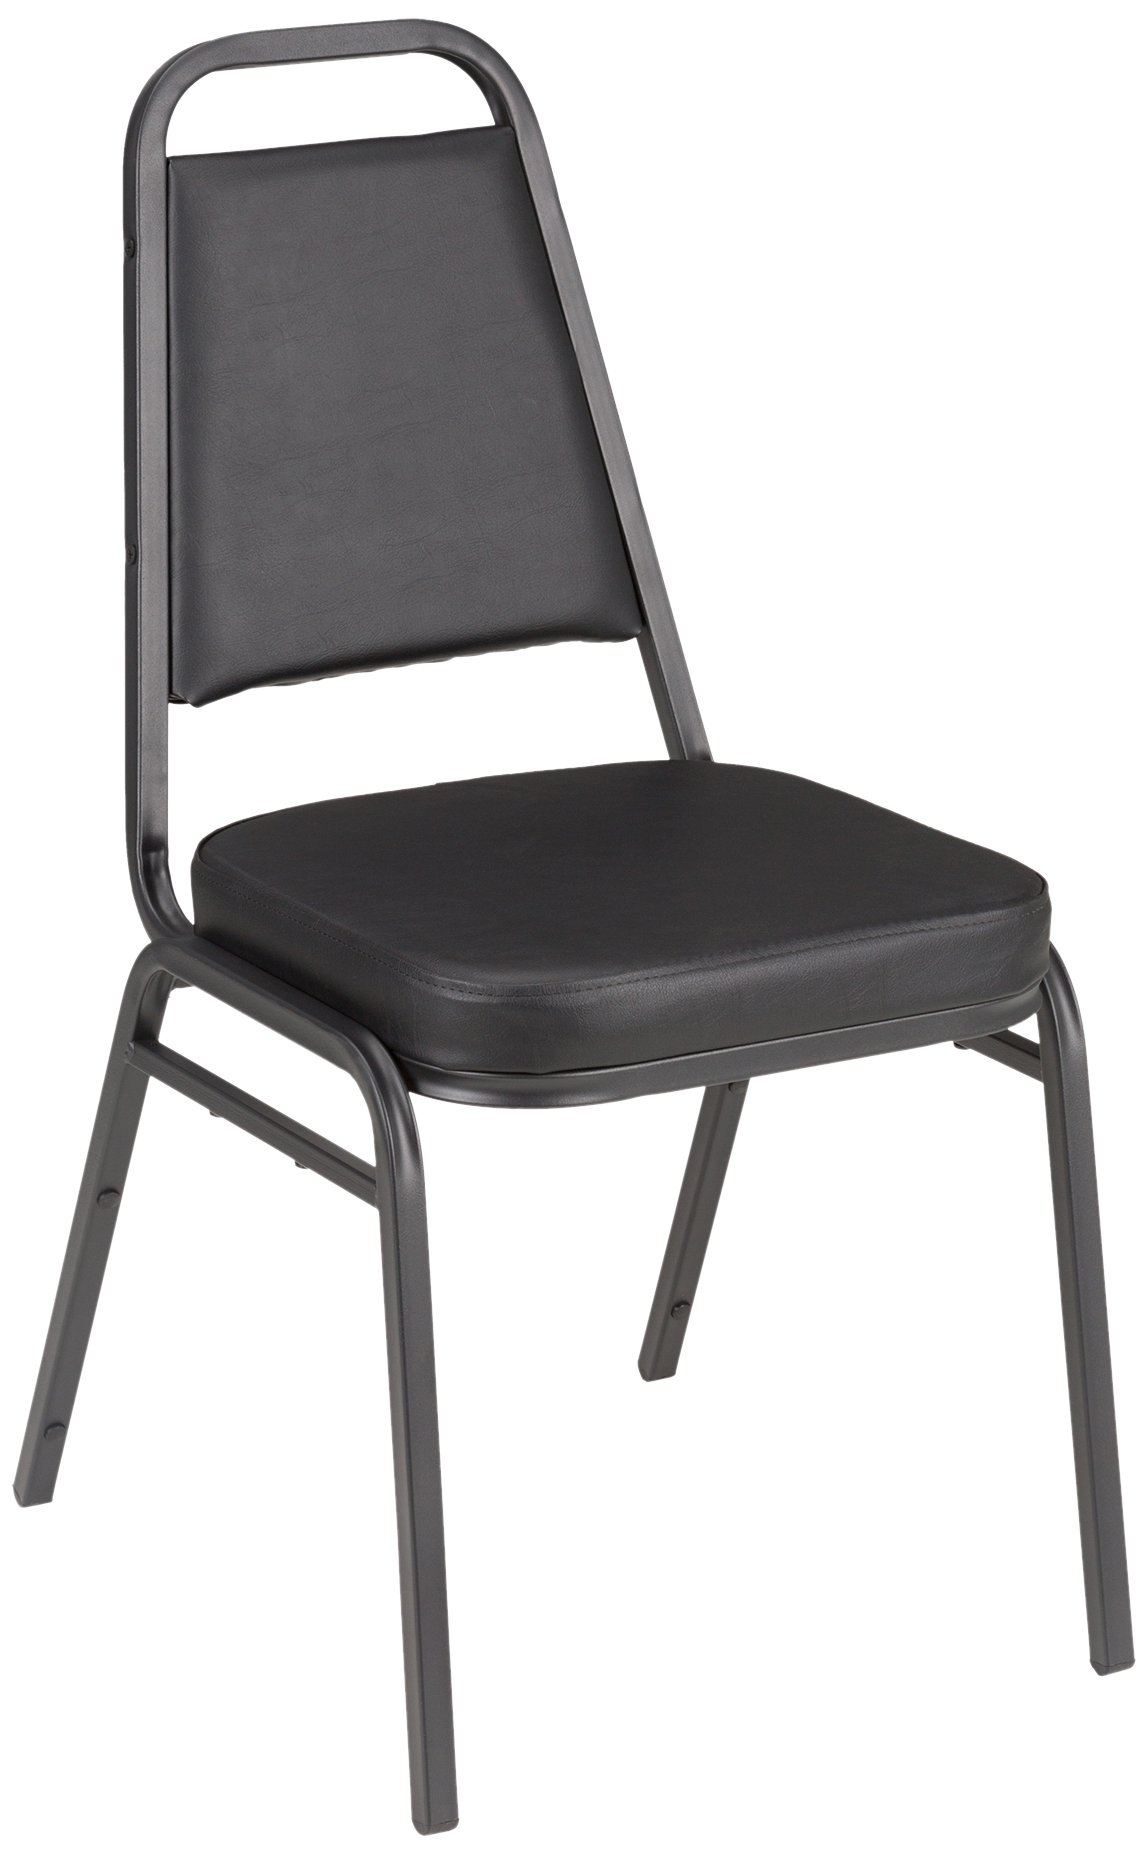 Vinyl Stacking Banquet Chair with Square Back, 18'' Seat Height, Black, ALT-200VBK-SO (Pack of 4)